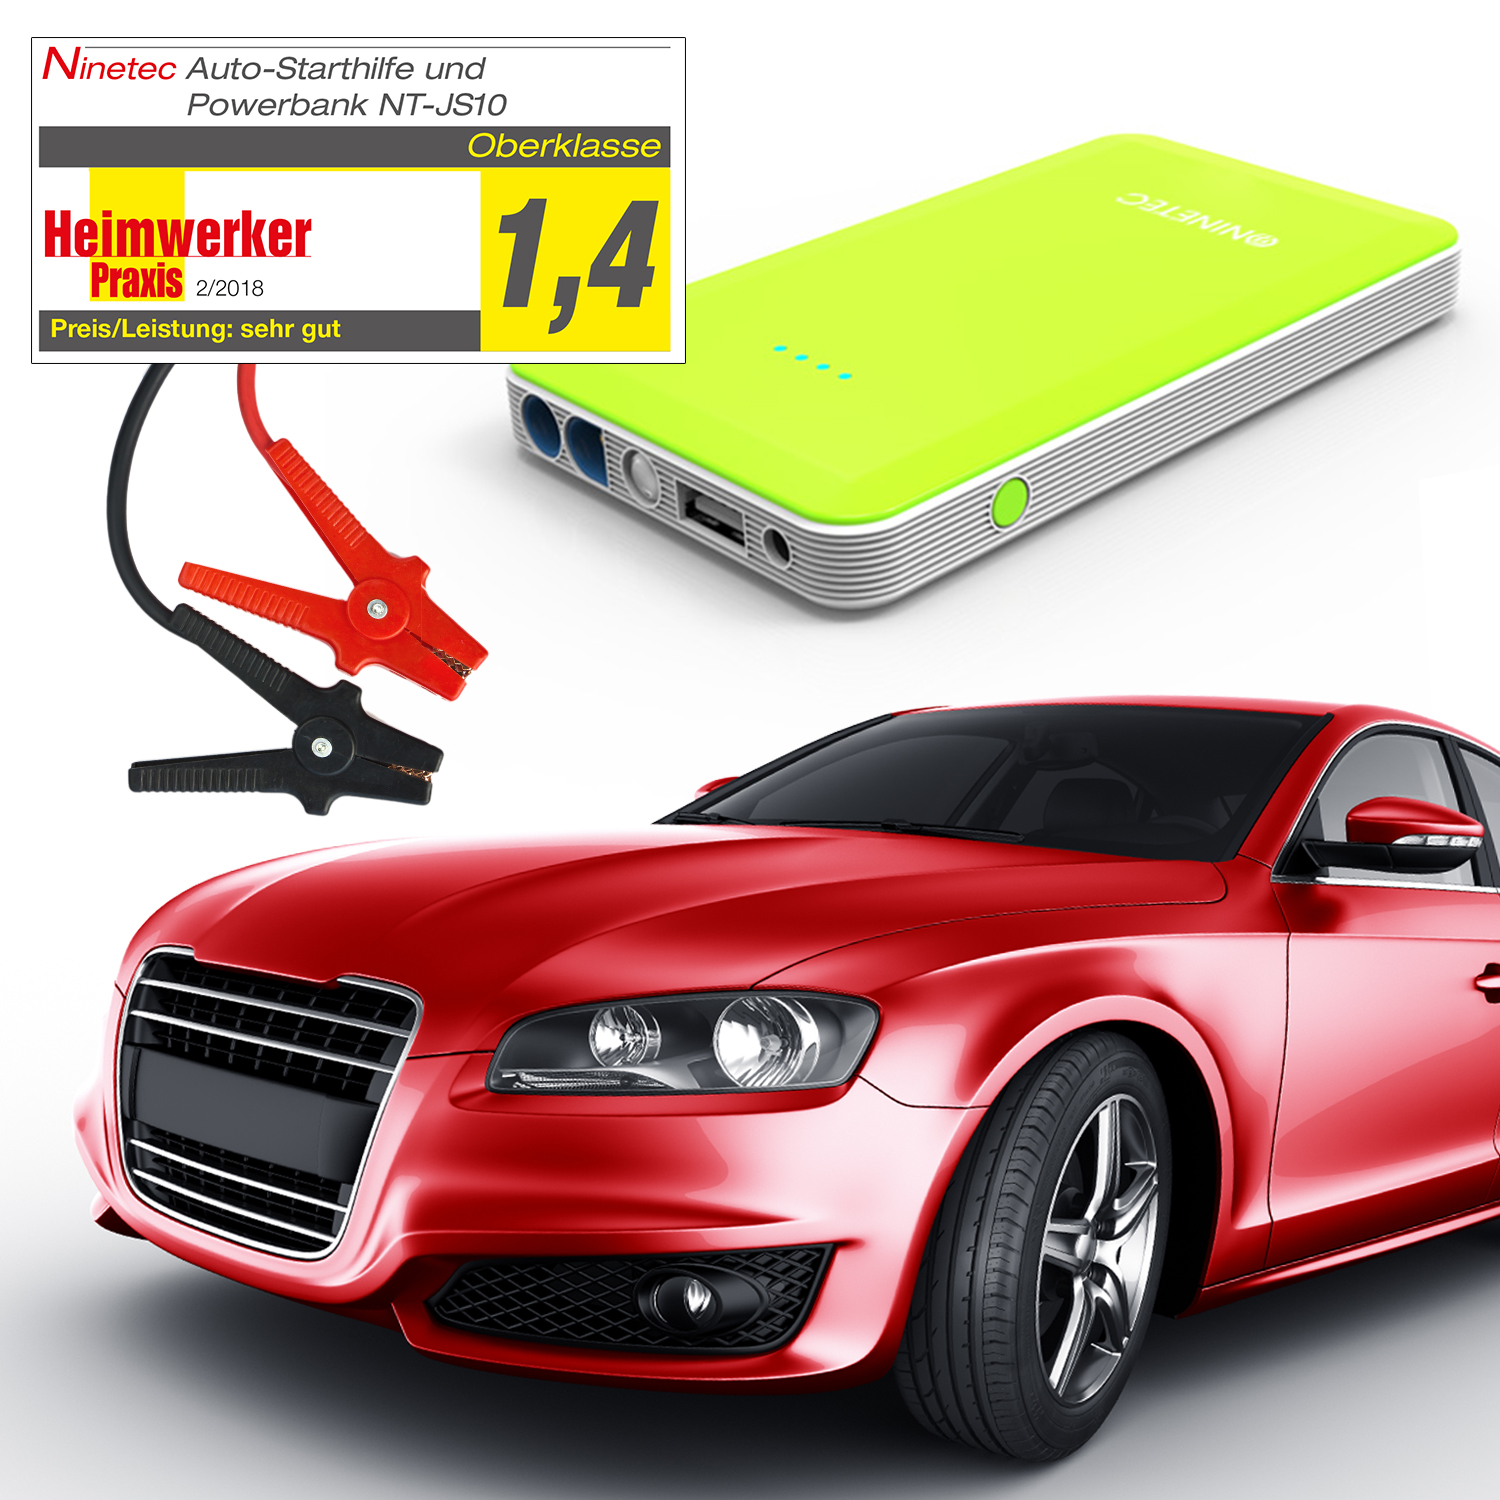 ninetec power bank jump starter 12v auto starthilfe ladeger t nt js10 gr n ebay. Black Bedroom Furniture Sets. Home Design Ideas